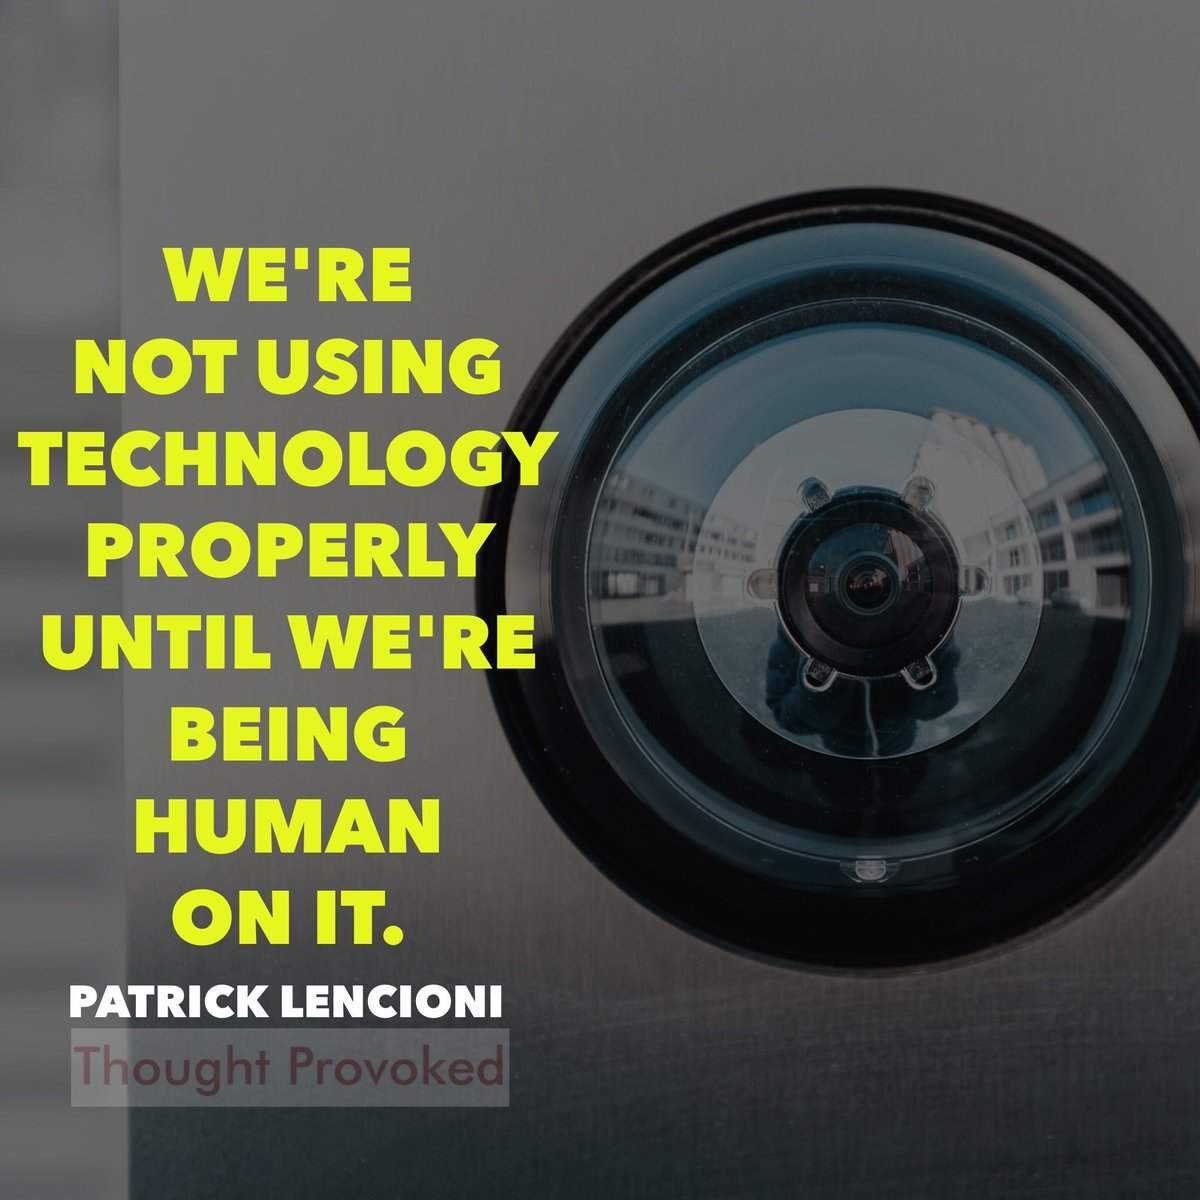 We're not using technology properly until we're being human on it. #quote @patricklencioni   #thursdaymorning #IQRTG #COVIDー19 #COVID19 #quotes #ThursdayThoughts #WFHpic.twitter.com/ke98P8J6he